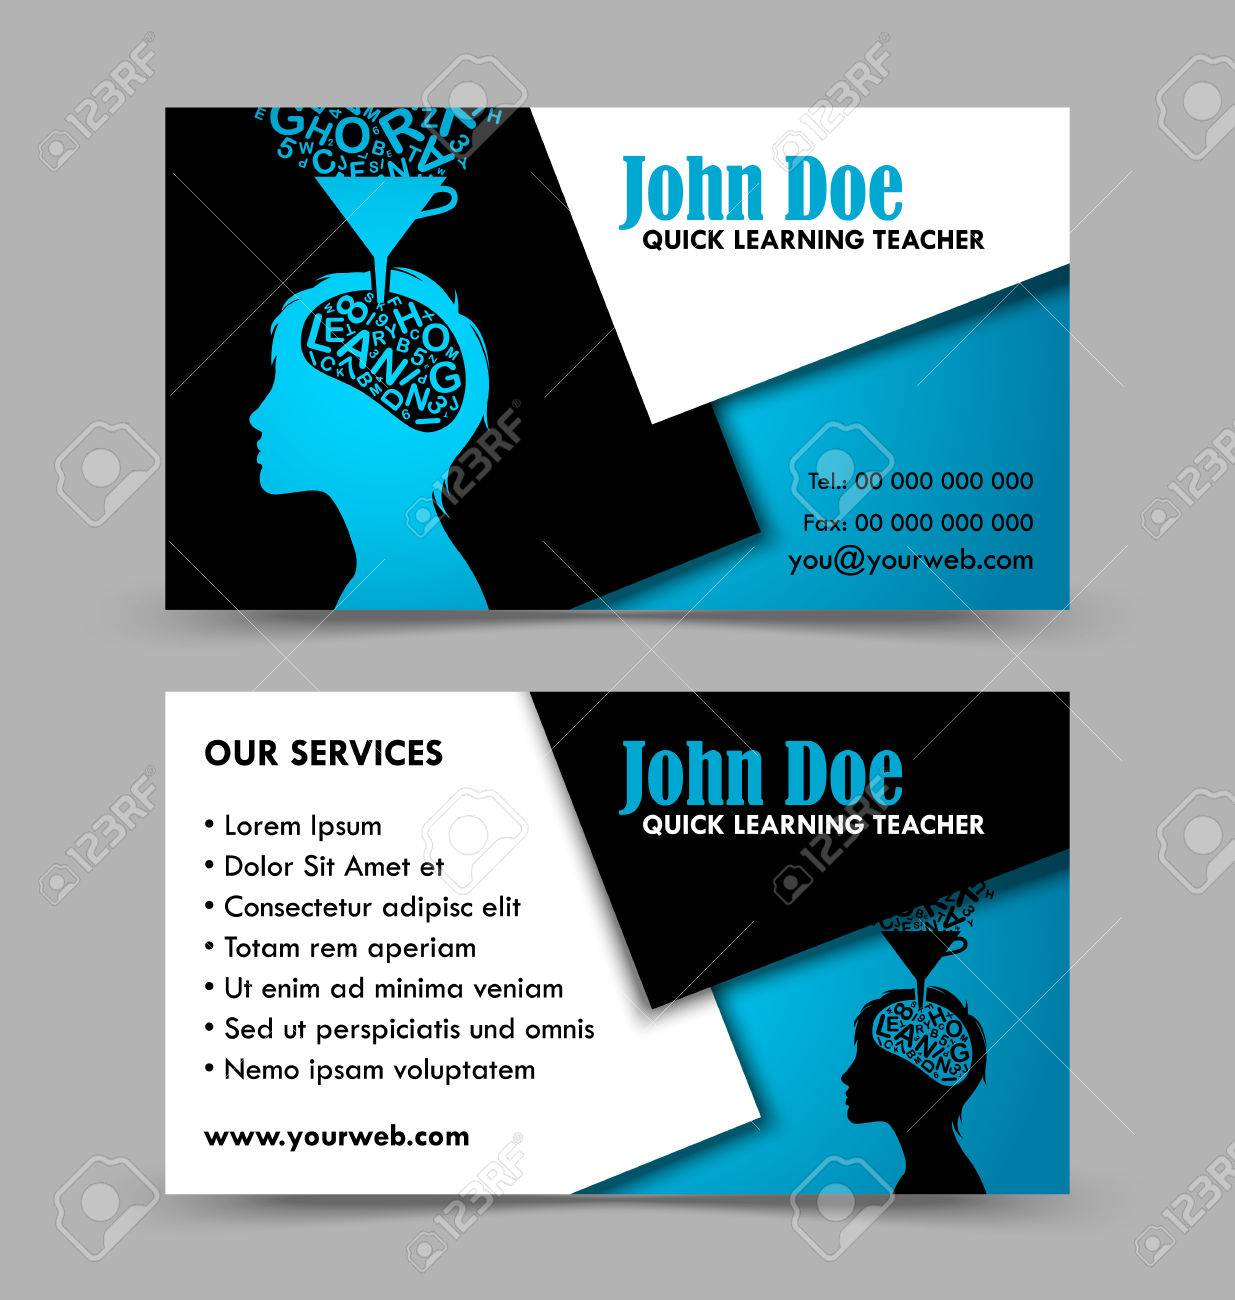 Luxury business cards front and back ideas business card ideas contemporary business card back ensign business card ideas colourmoves